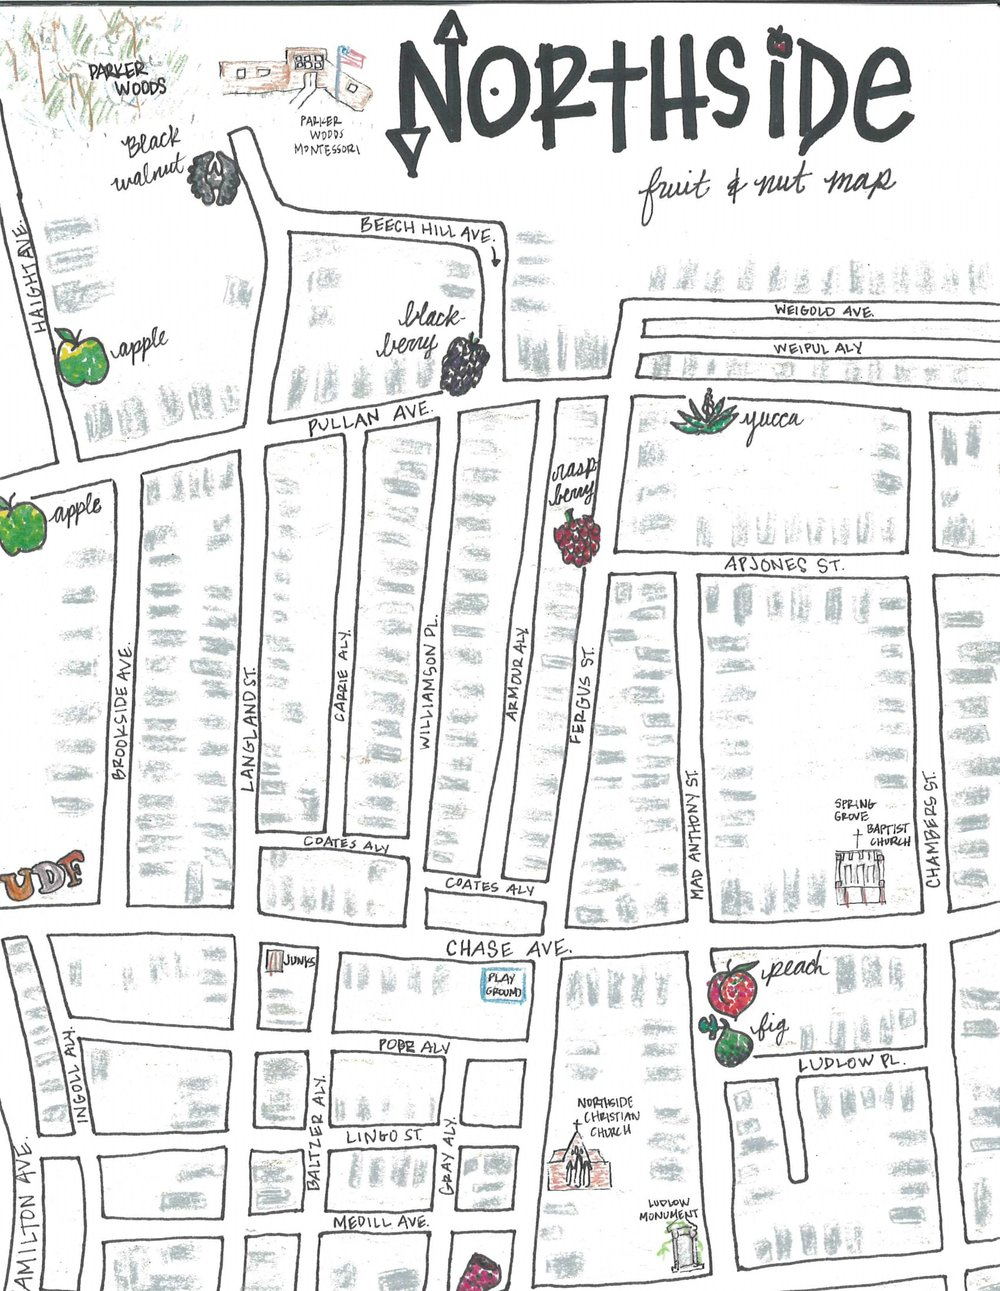 2-Northside-Food-Map-Rose-CSCTC-16-1.jpg